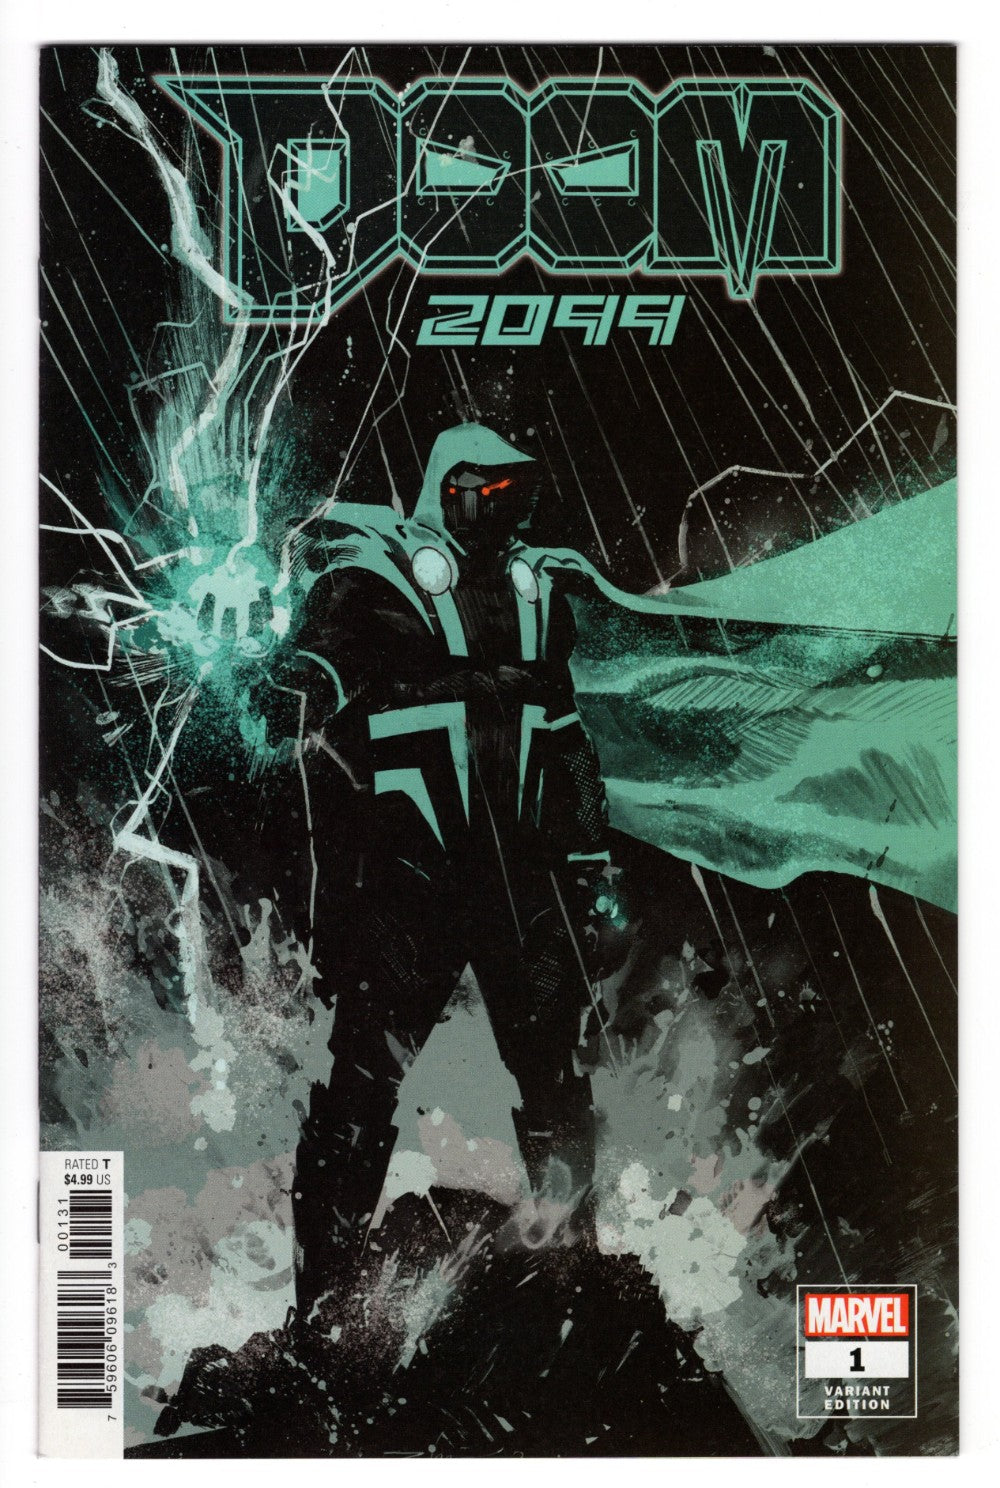 DOOM 2099 #1 1 in 50 GEREADO ZAFFINO VARIANT